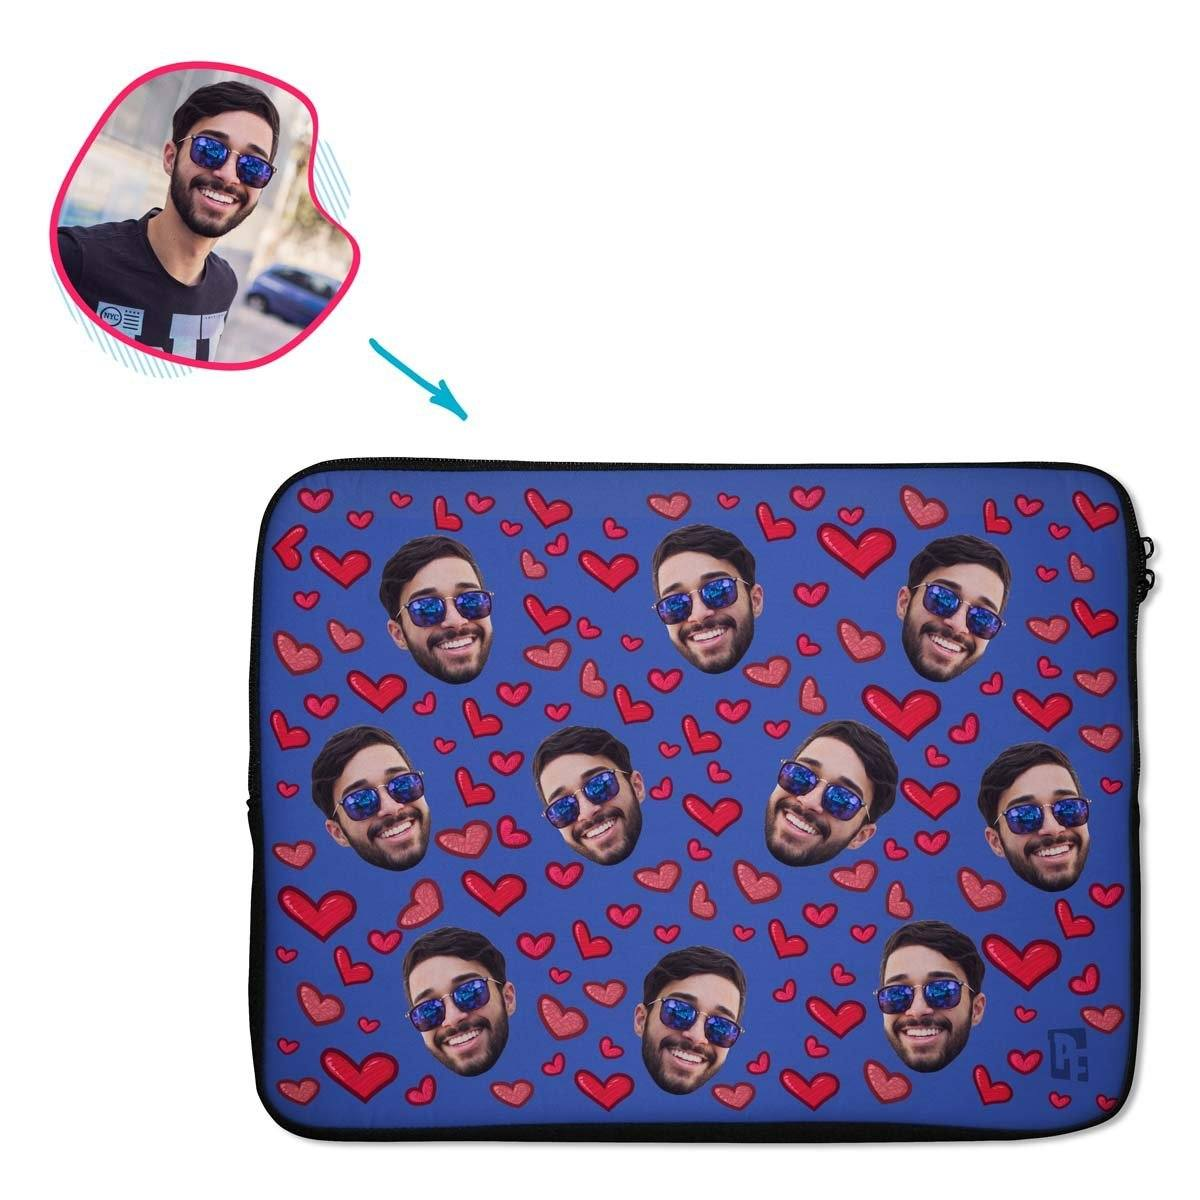 darkblue Heart laptop sleeve personalized with photo of face printed on them